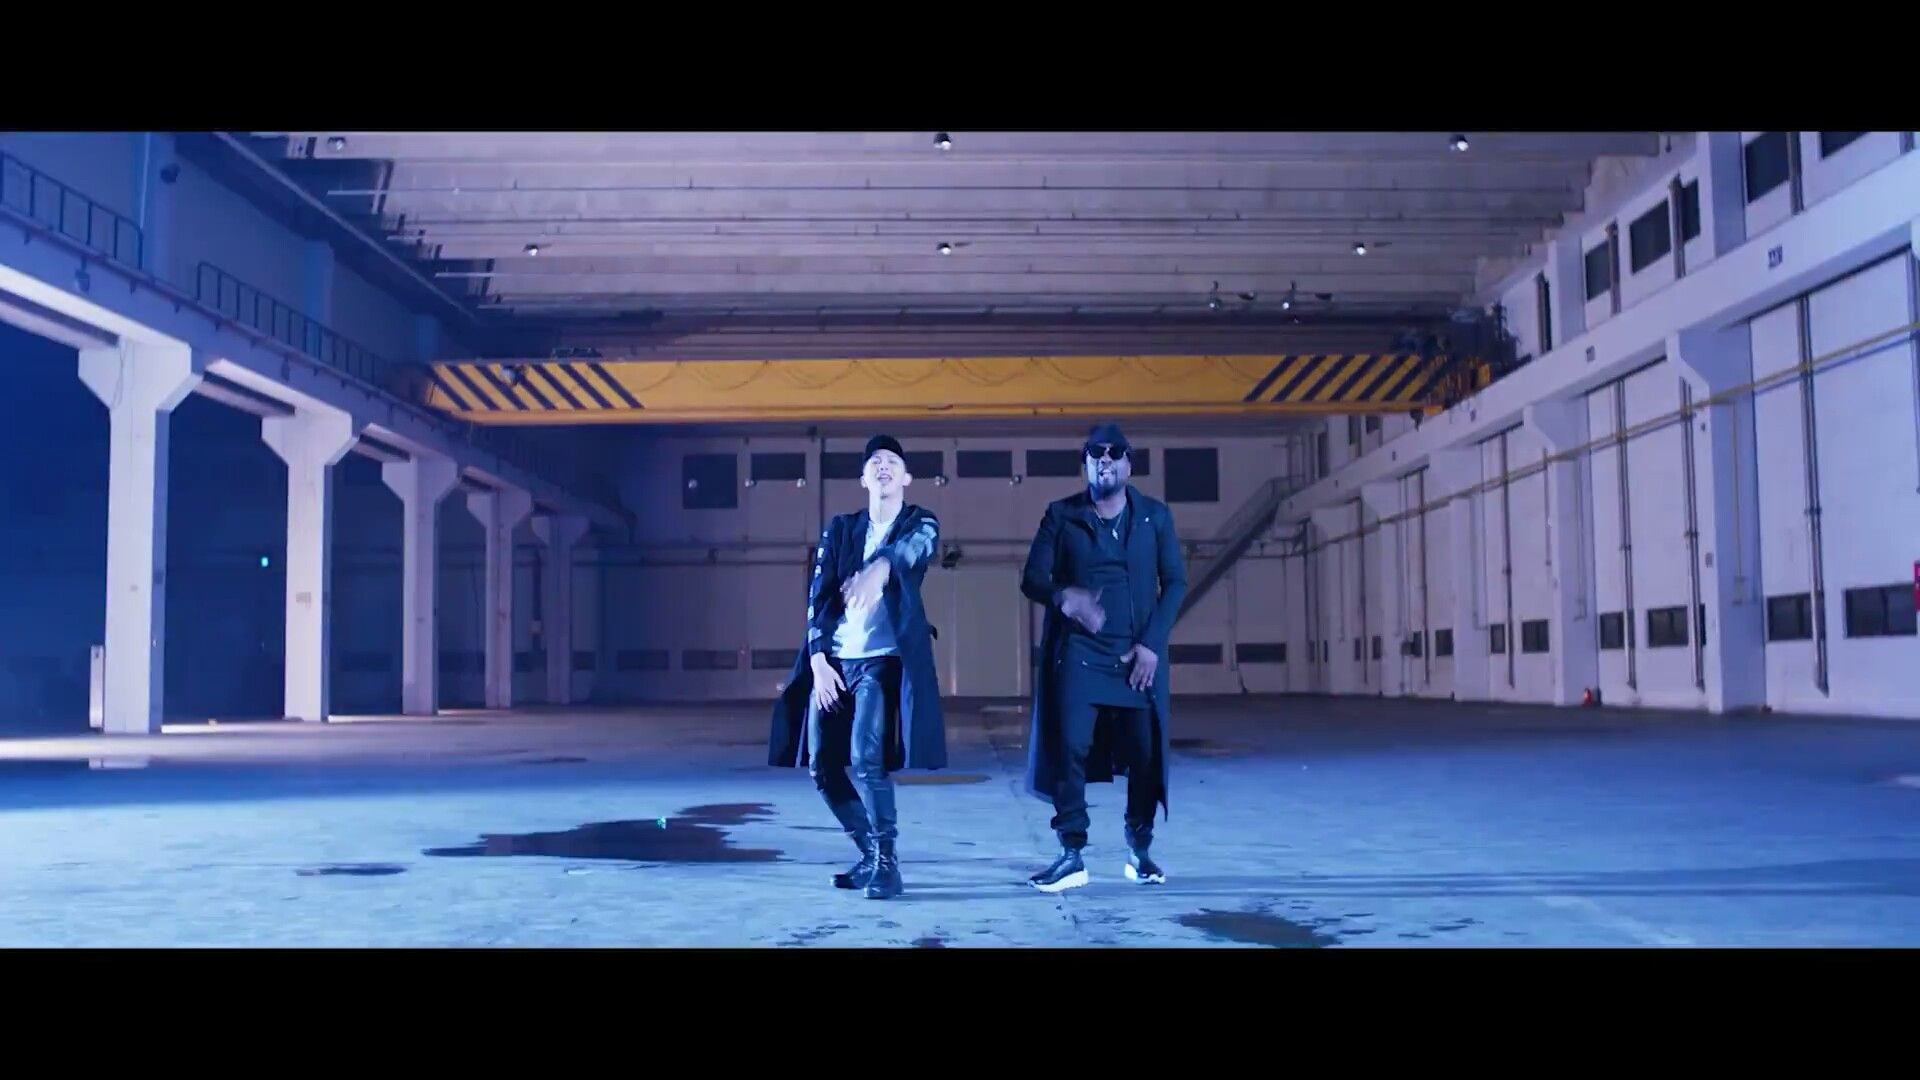 Rap Monster and Wale ❤ RM, Wale 'Change' MV #BTS #방탄소년단